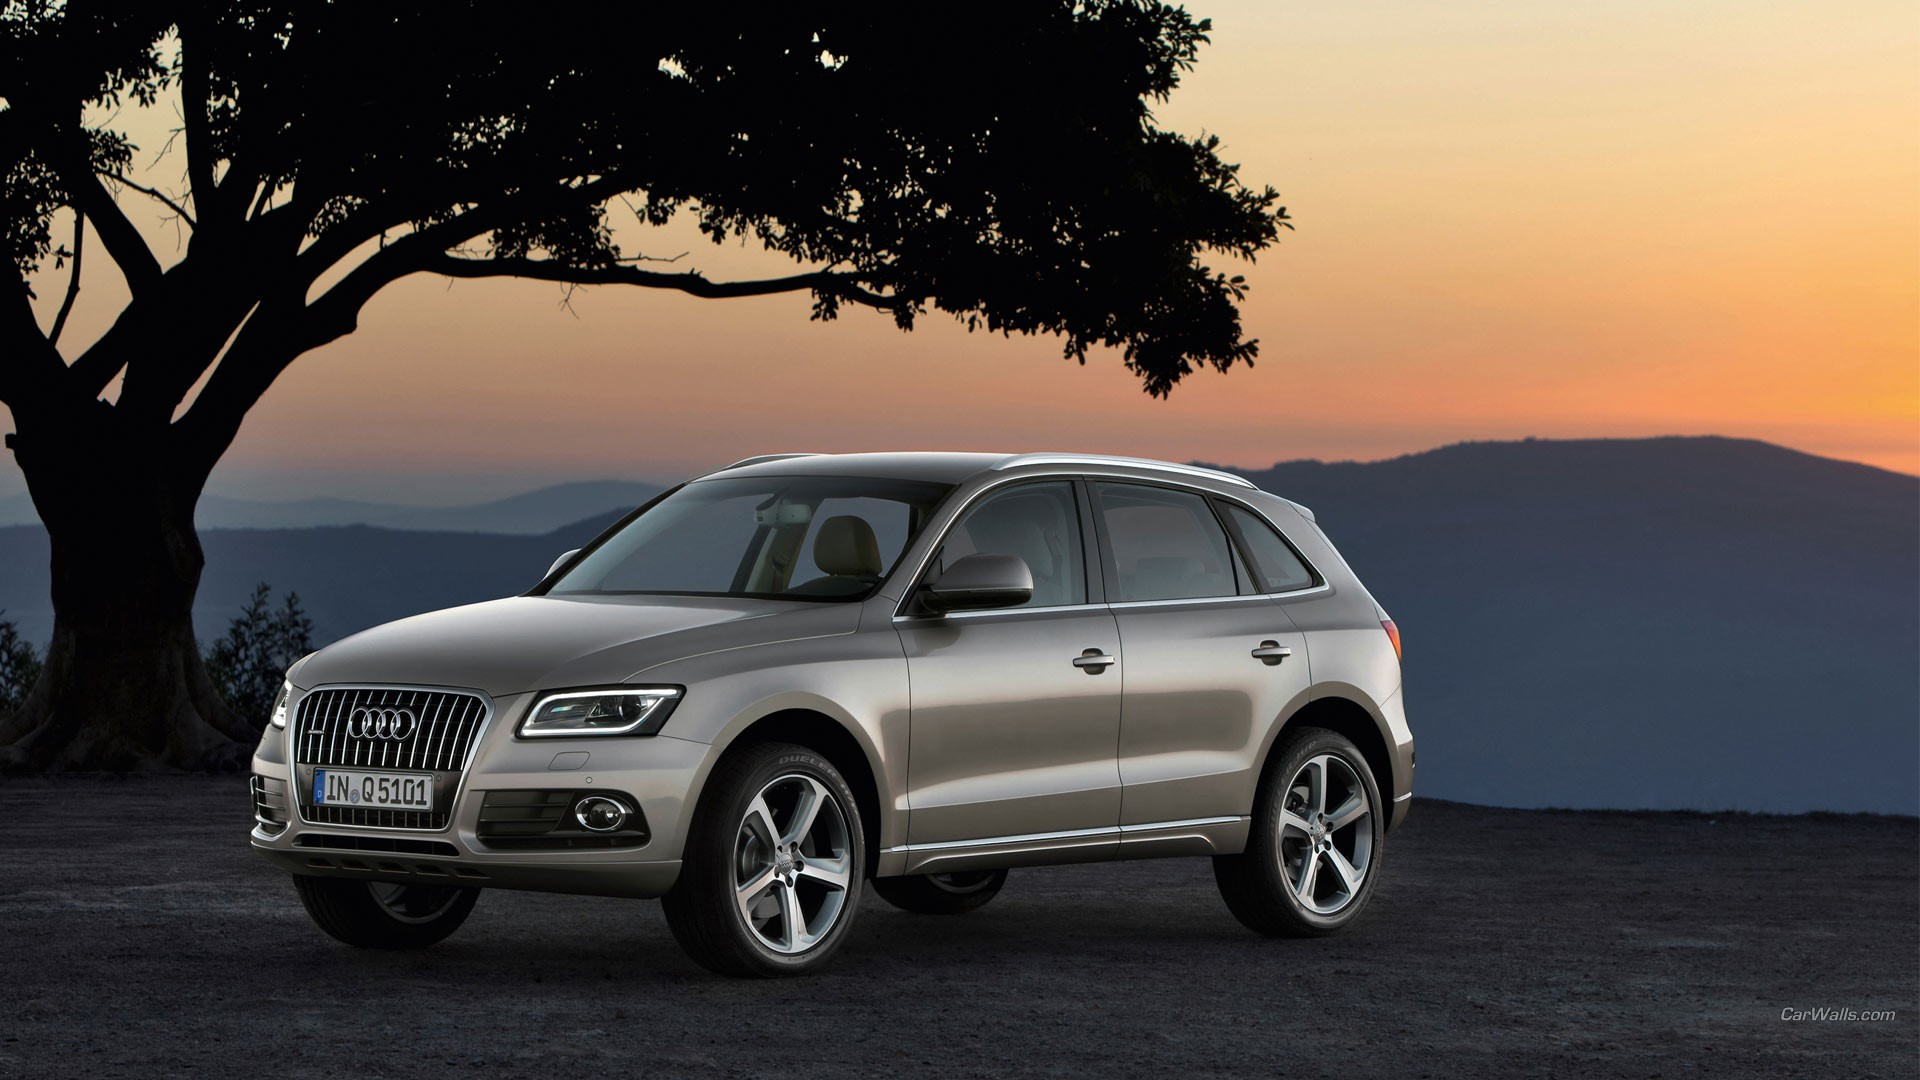 1920x1080 - Audi Q5 Wallpapers 26